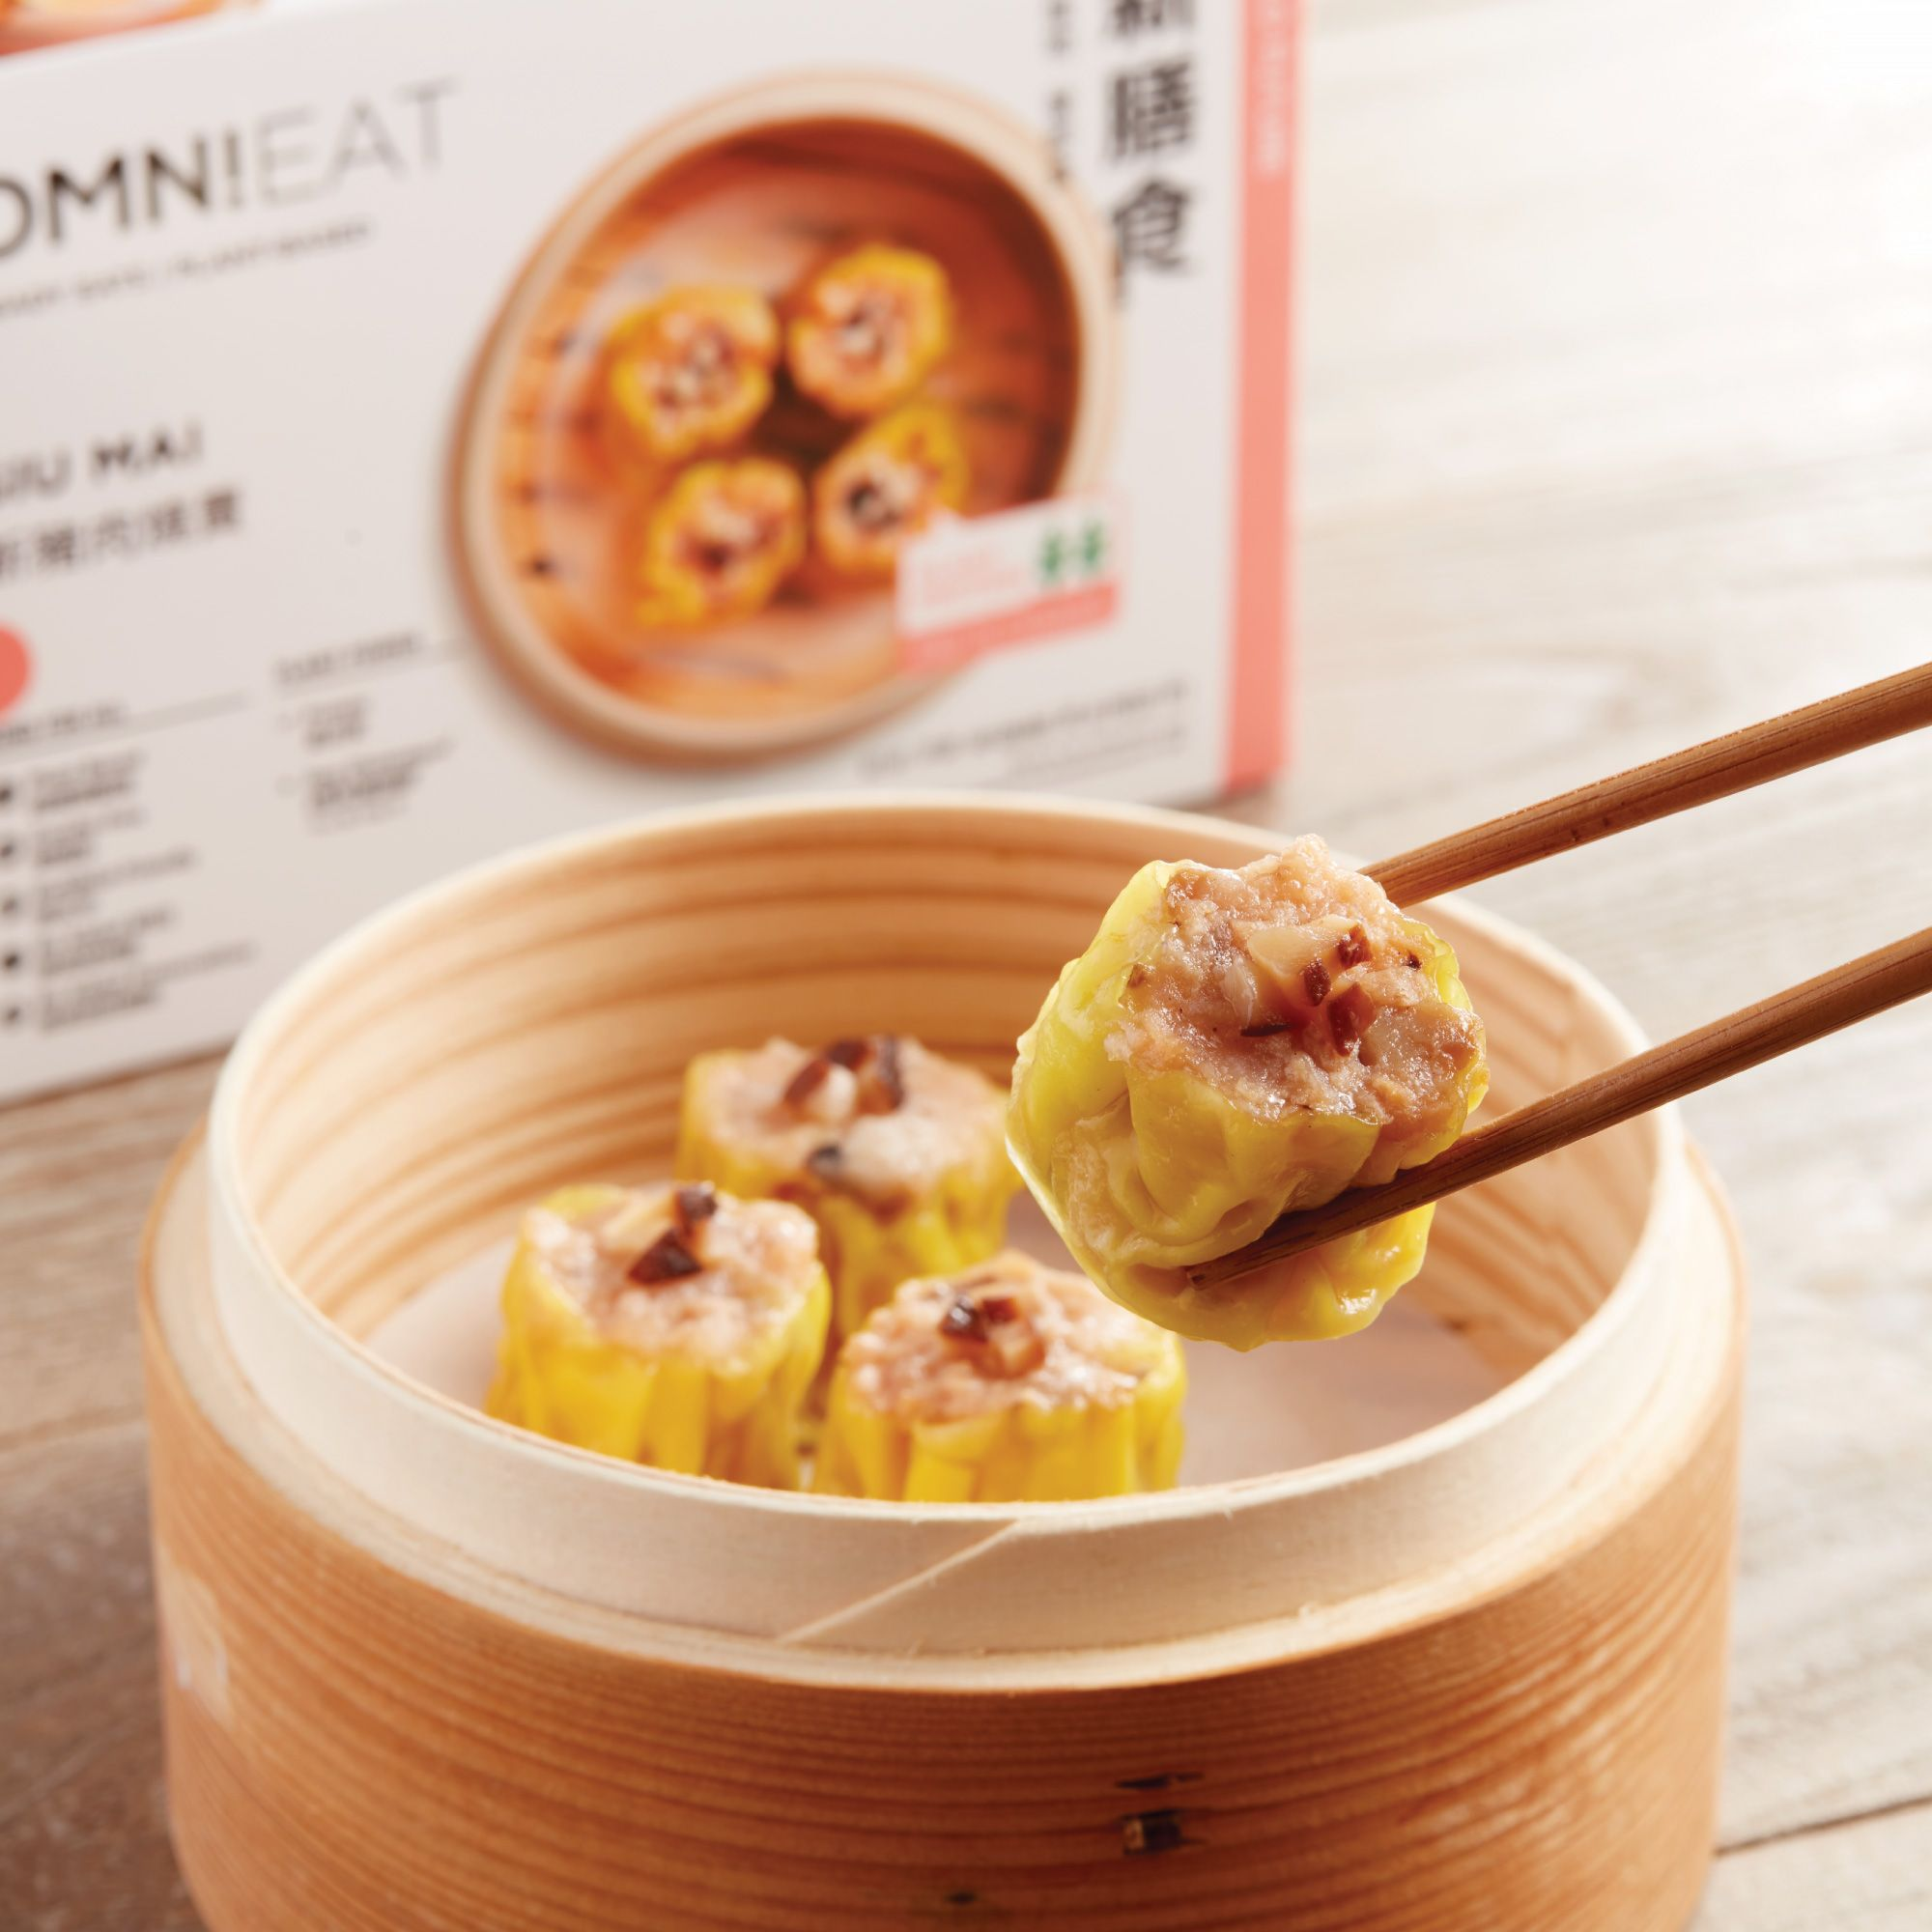 The New OmniEat Meals Launching At 7-Eleven Are Reimagined Hong Kong Classics